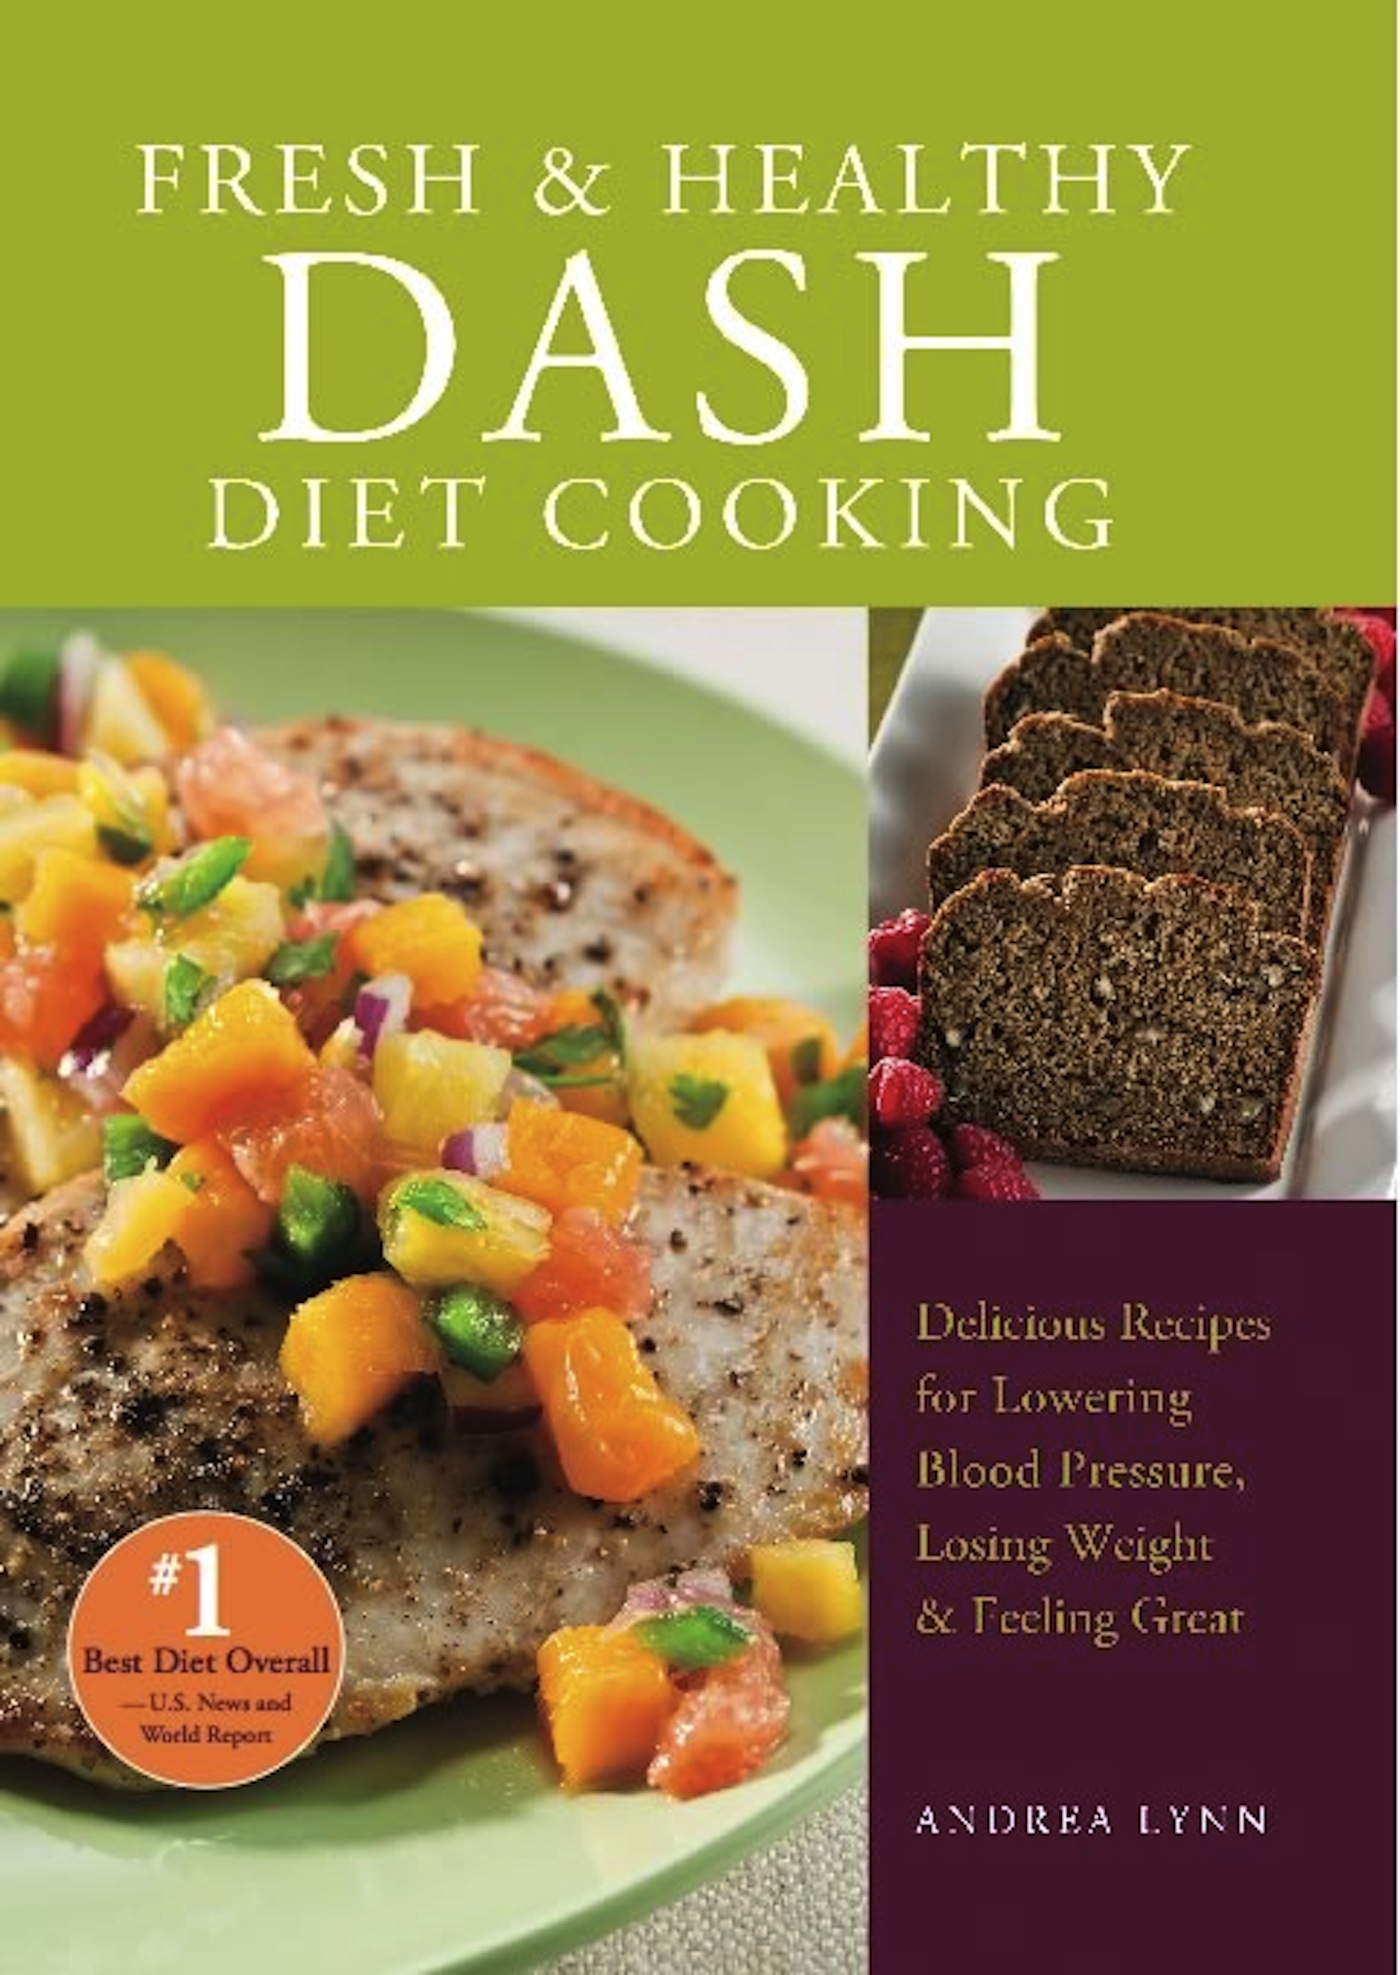 Fresh and Healthy DASH Diet Cooking